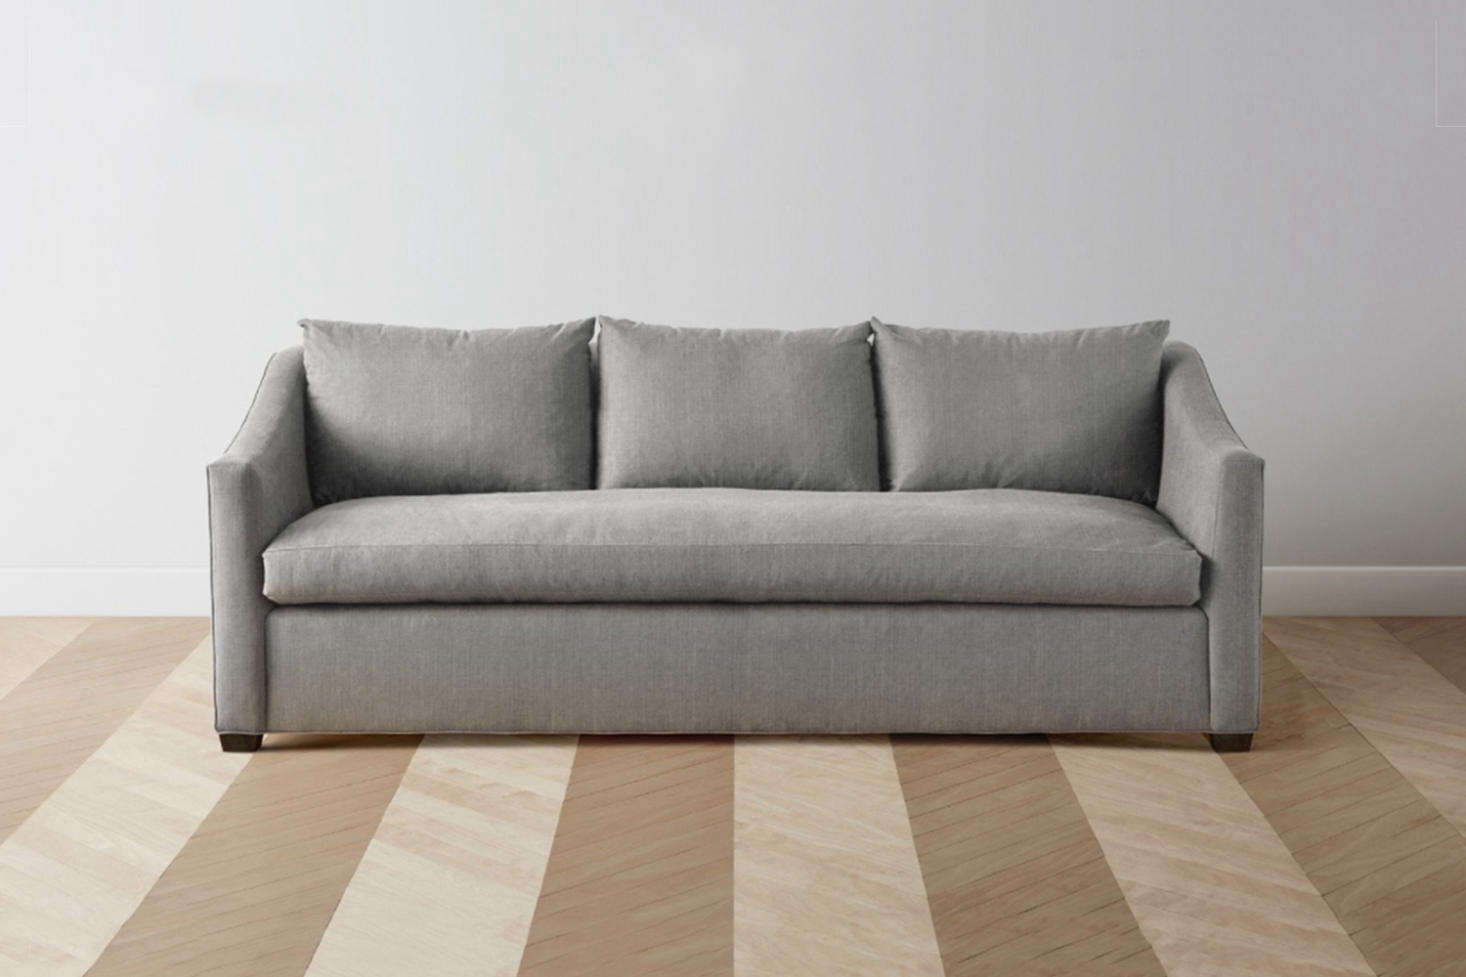 From New Sofa Company Maiden Home, The Sullivan Sofa Has A Wood Frame, Goose